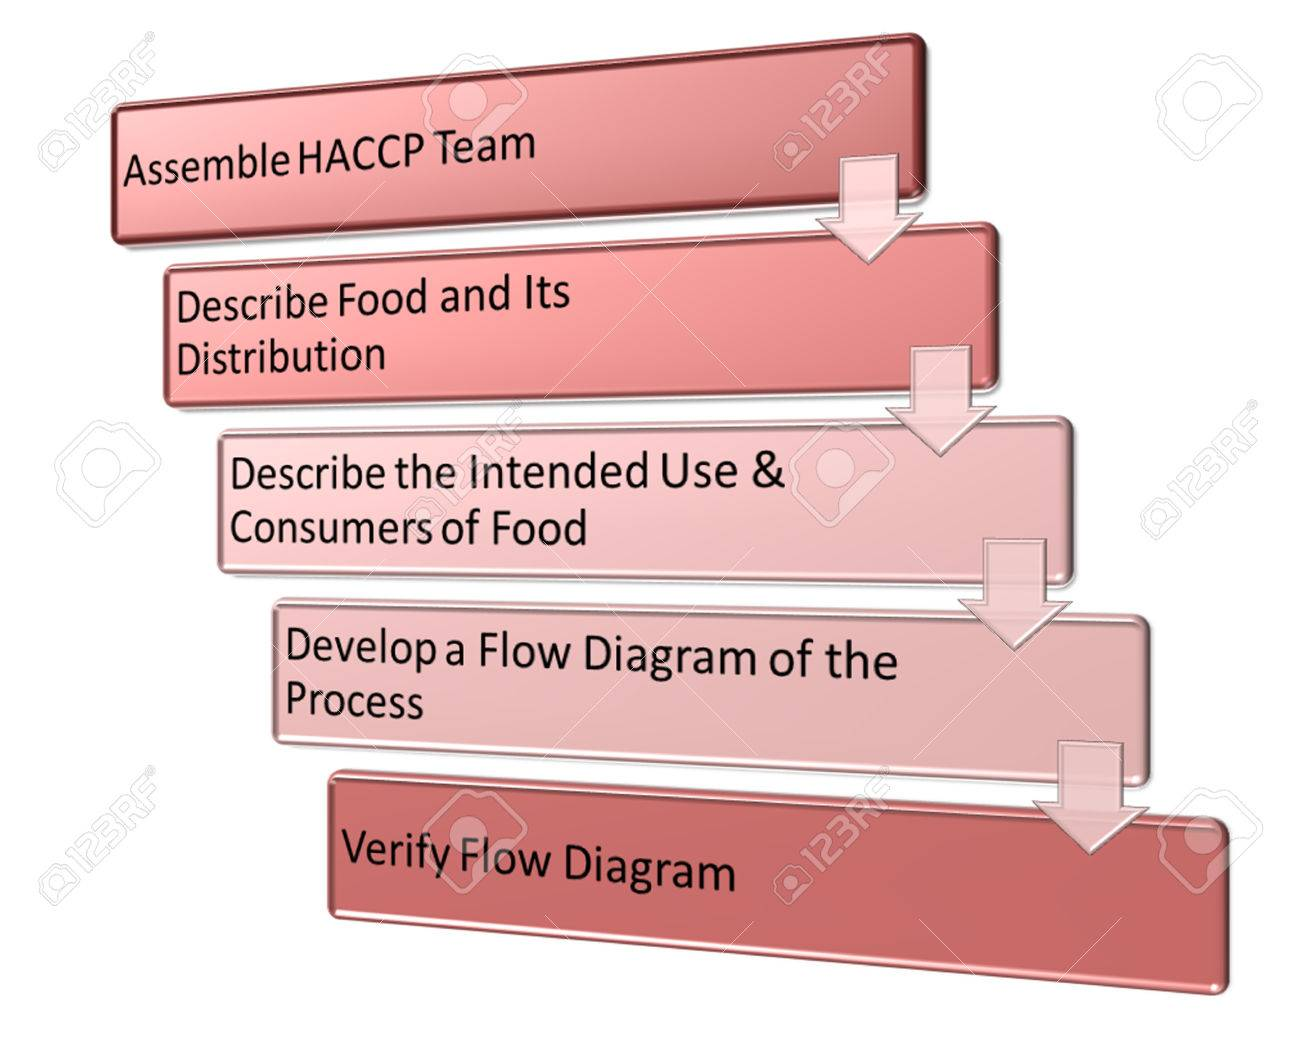 Haccp Plan Flow Diagram Trusted Wiring Process Restaurant Task In Development Of Style Stock Photo Picture And Template